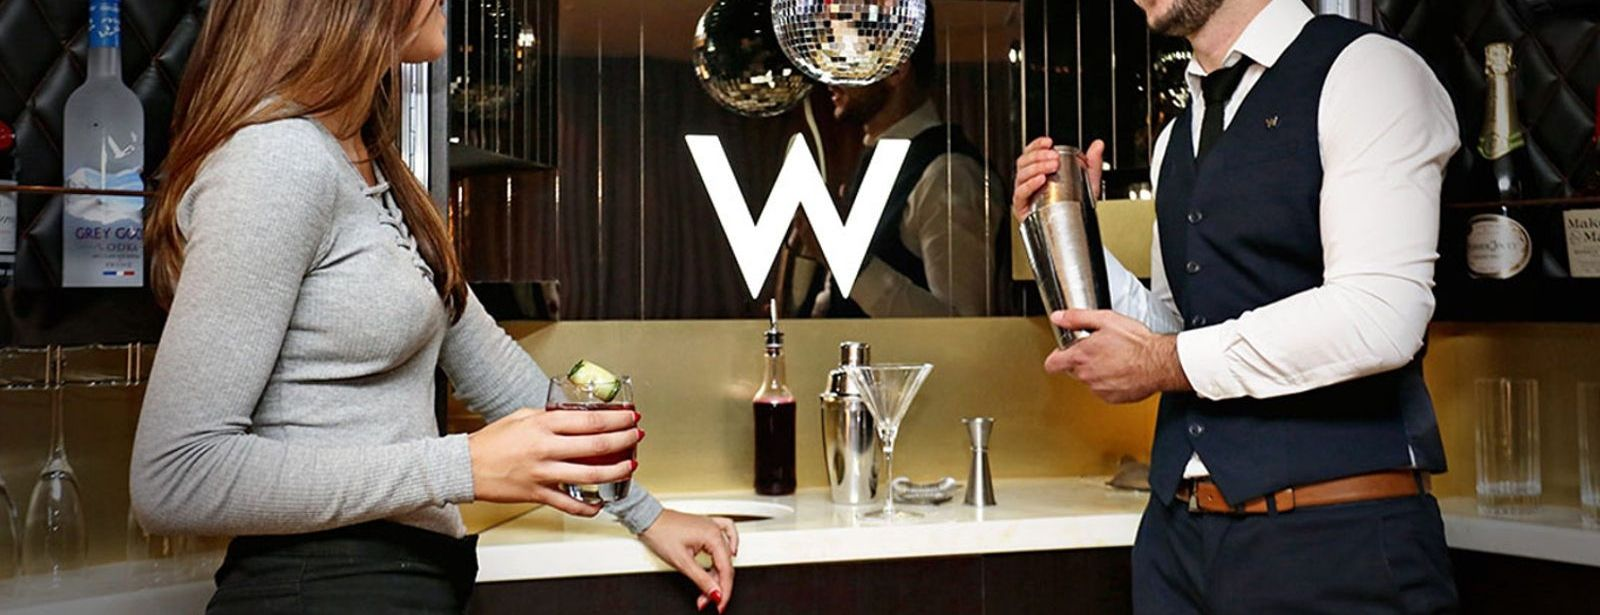 W London Leicester Square Mega Bar Experience